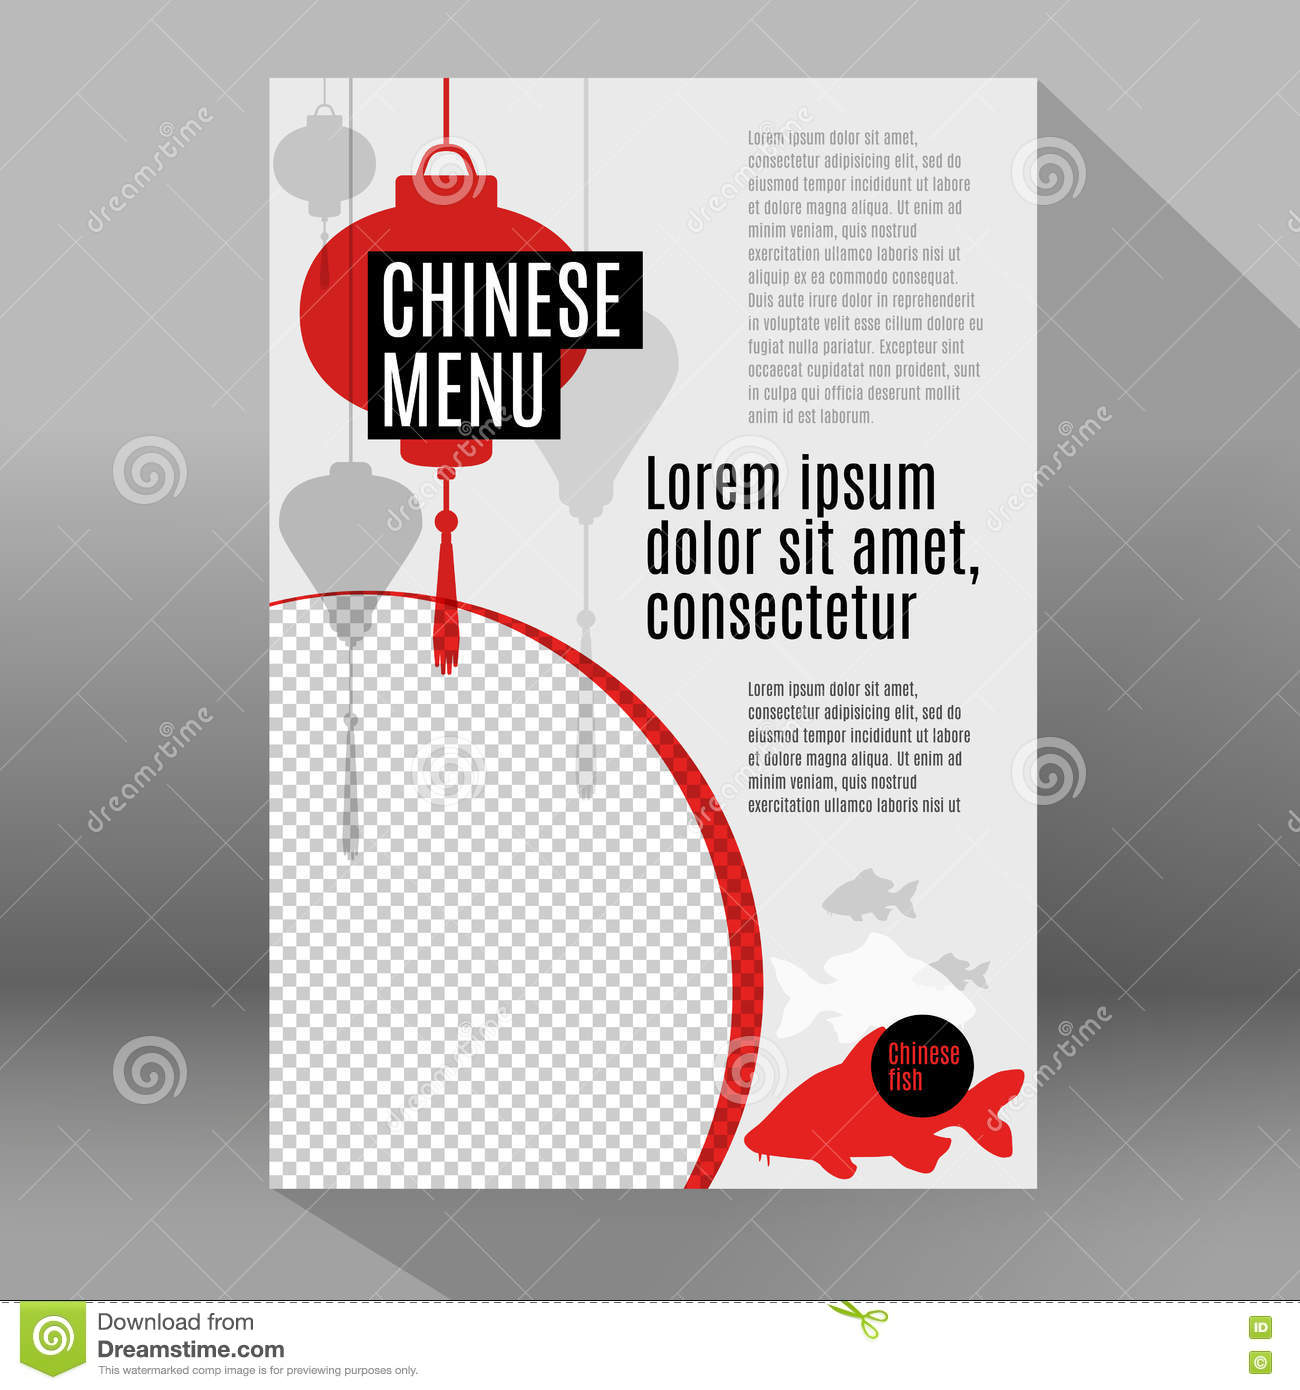 Elements of a poster design - Cafe Chinese Corporate Design Elements